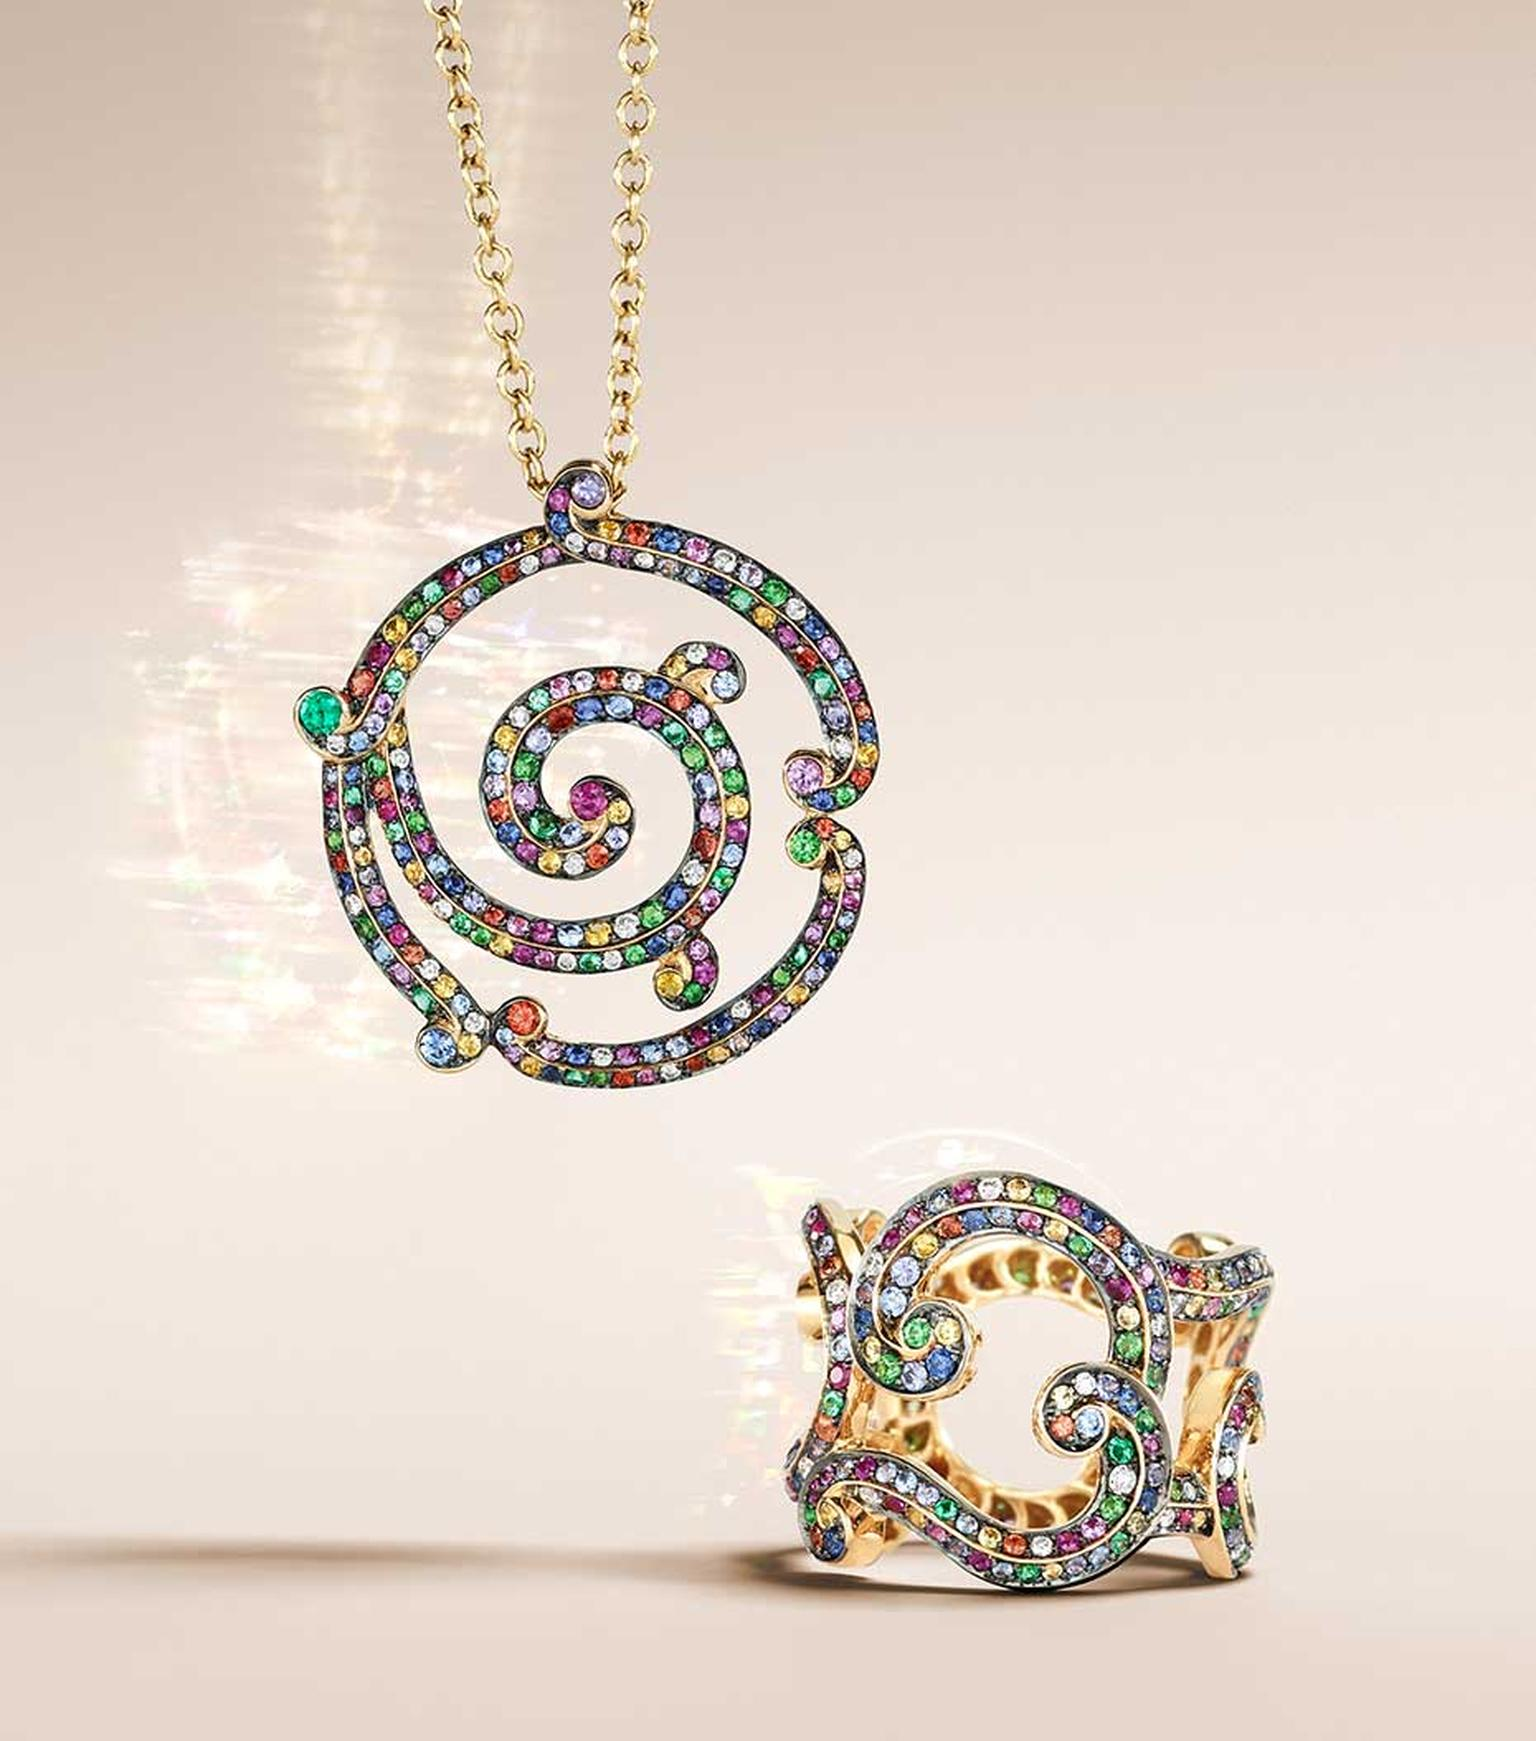 Fabergé Rococo Lace Multi-Coloured yellow gold pendant (£5,331) and ring (£6,219).